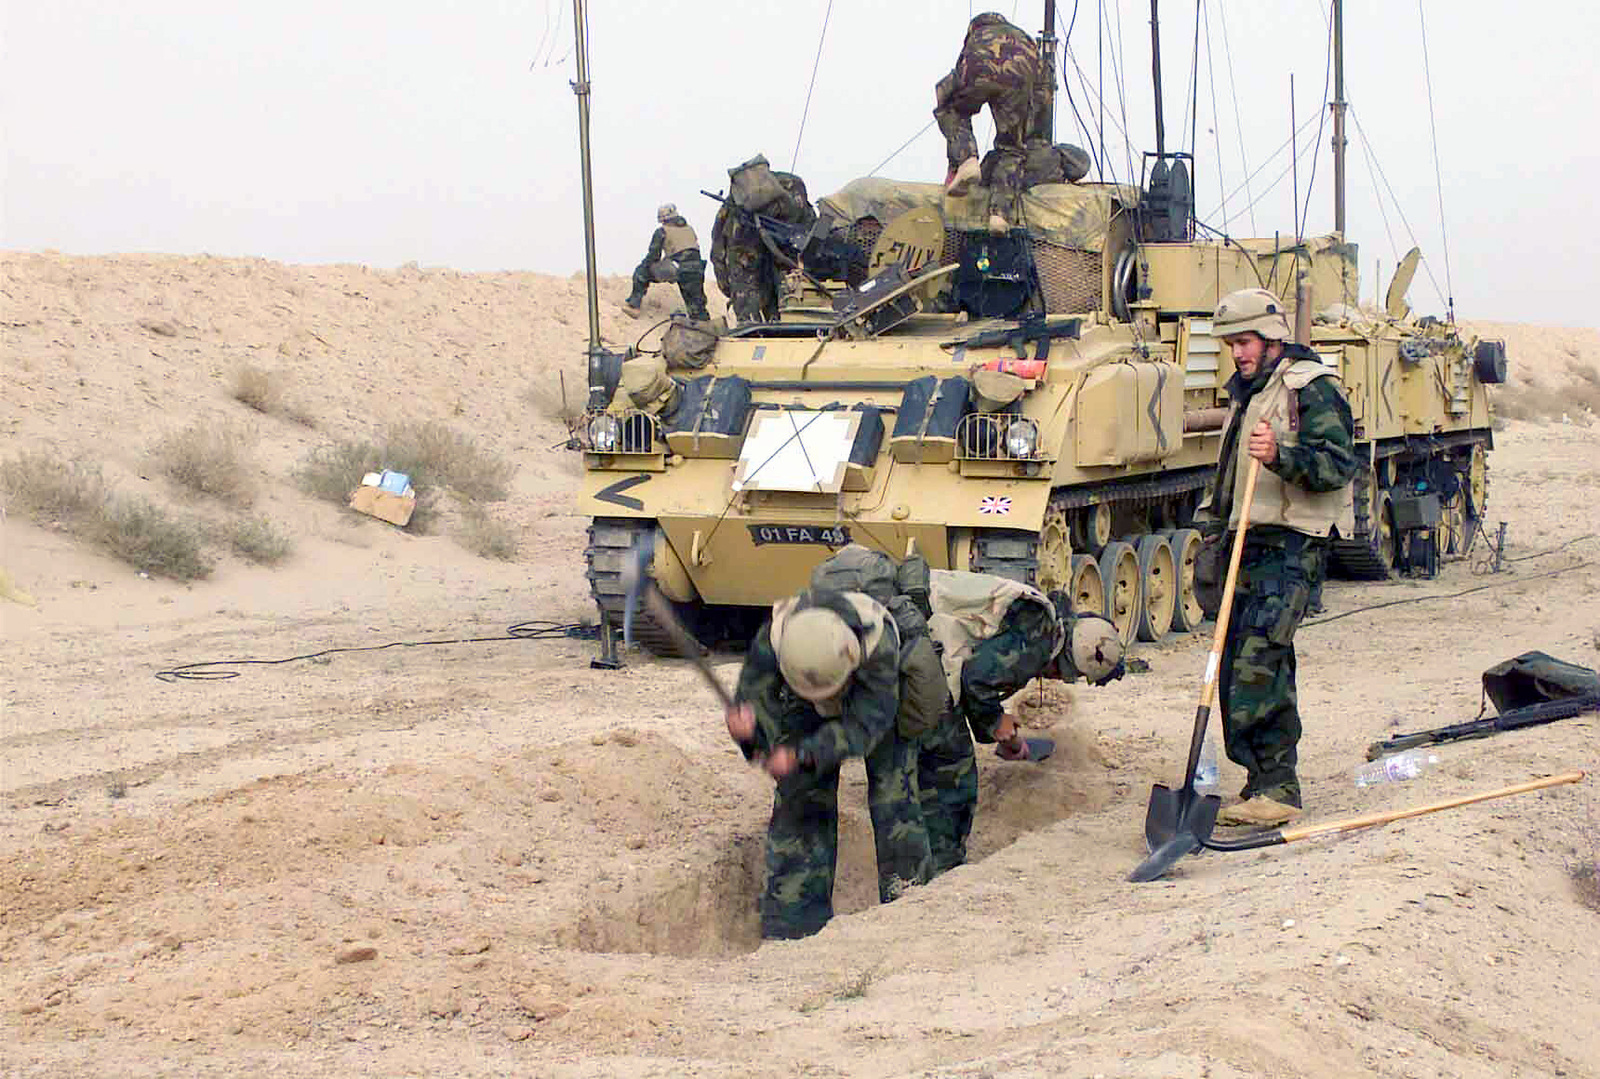 With a US Marine Corps (USMC) FV 430 Command Post Armored Personnel Carrier (APC) Vehicle in place behind him, Captain (CAPT) John Tinning, picks the rock hard ground as First Lieutenant (1LT) Jason Morrison, shovels the lose sand, while Corporal (CPL) Christopher Allen waits his turn, during Operation ENDURING FREEDOM